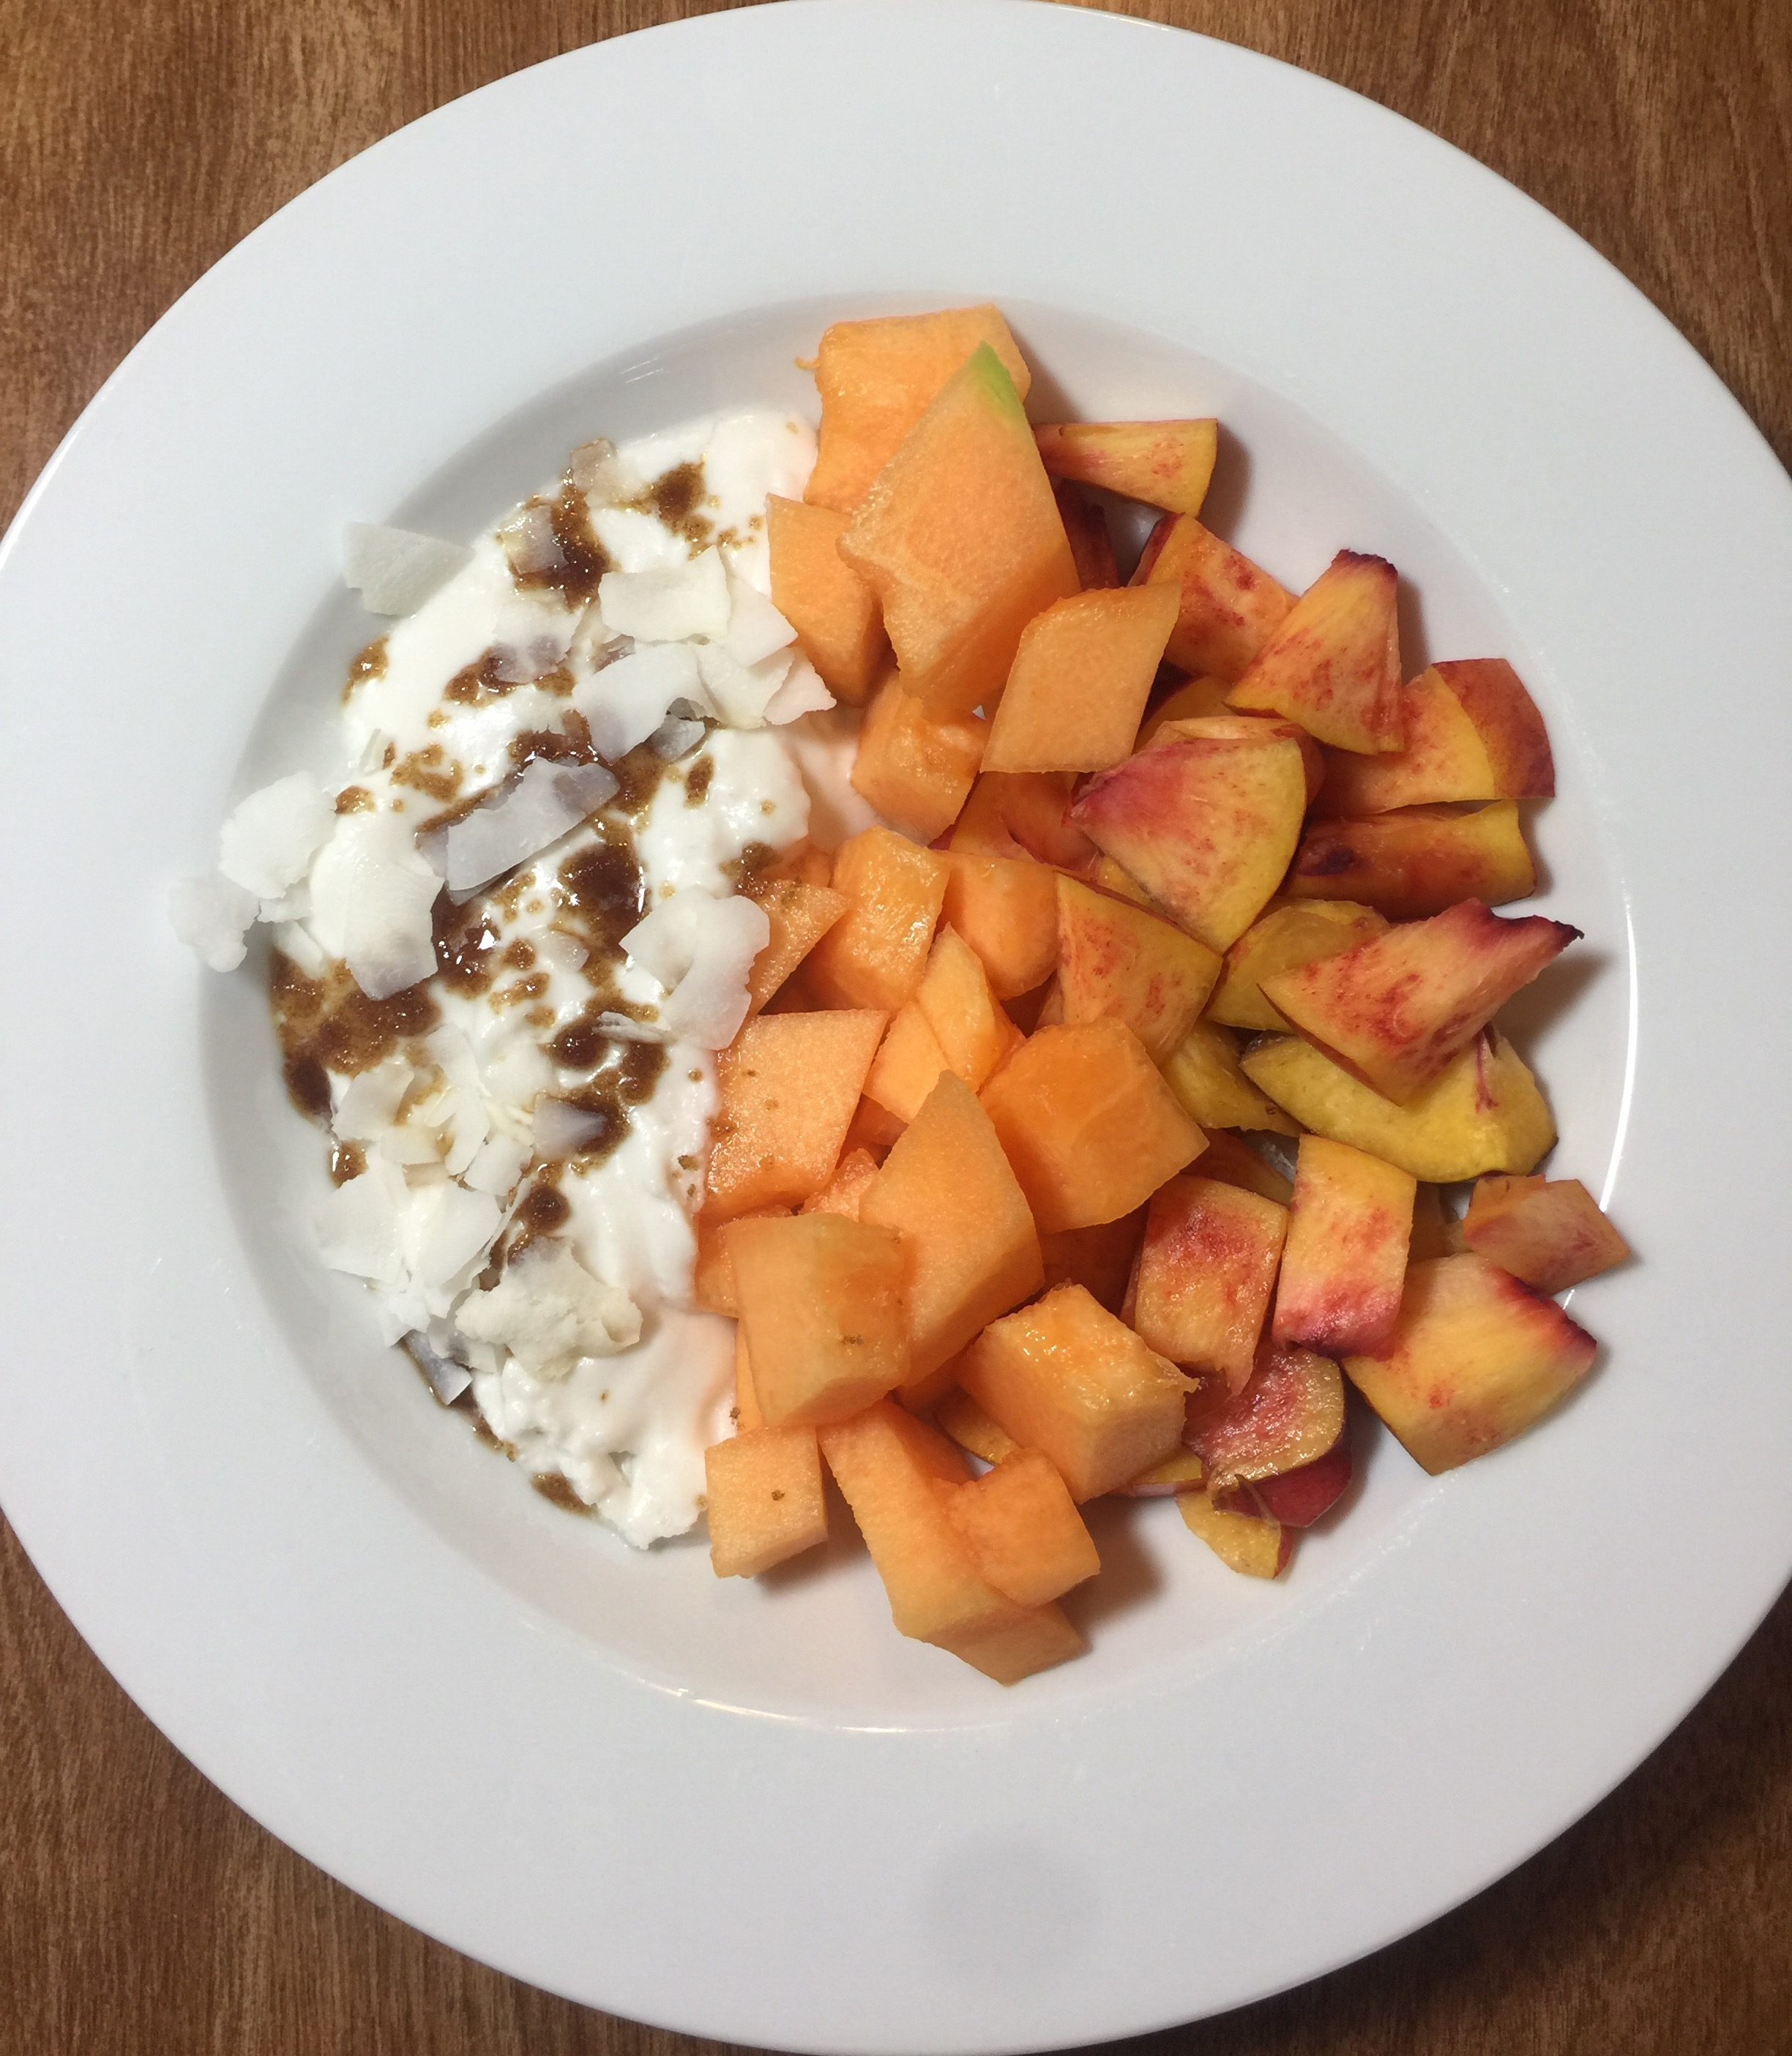 Cultured Coconut Yogurt with fruit, brown sugar and coconut flakes.